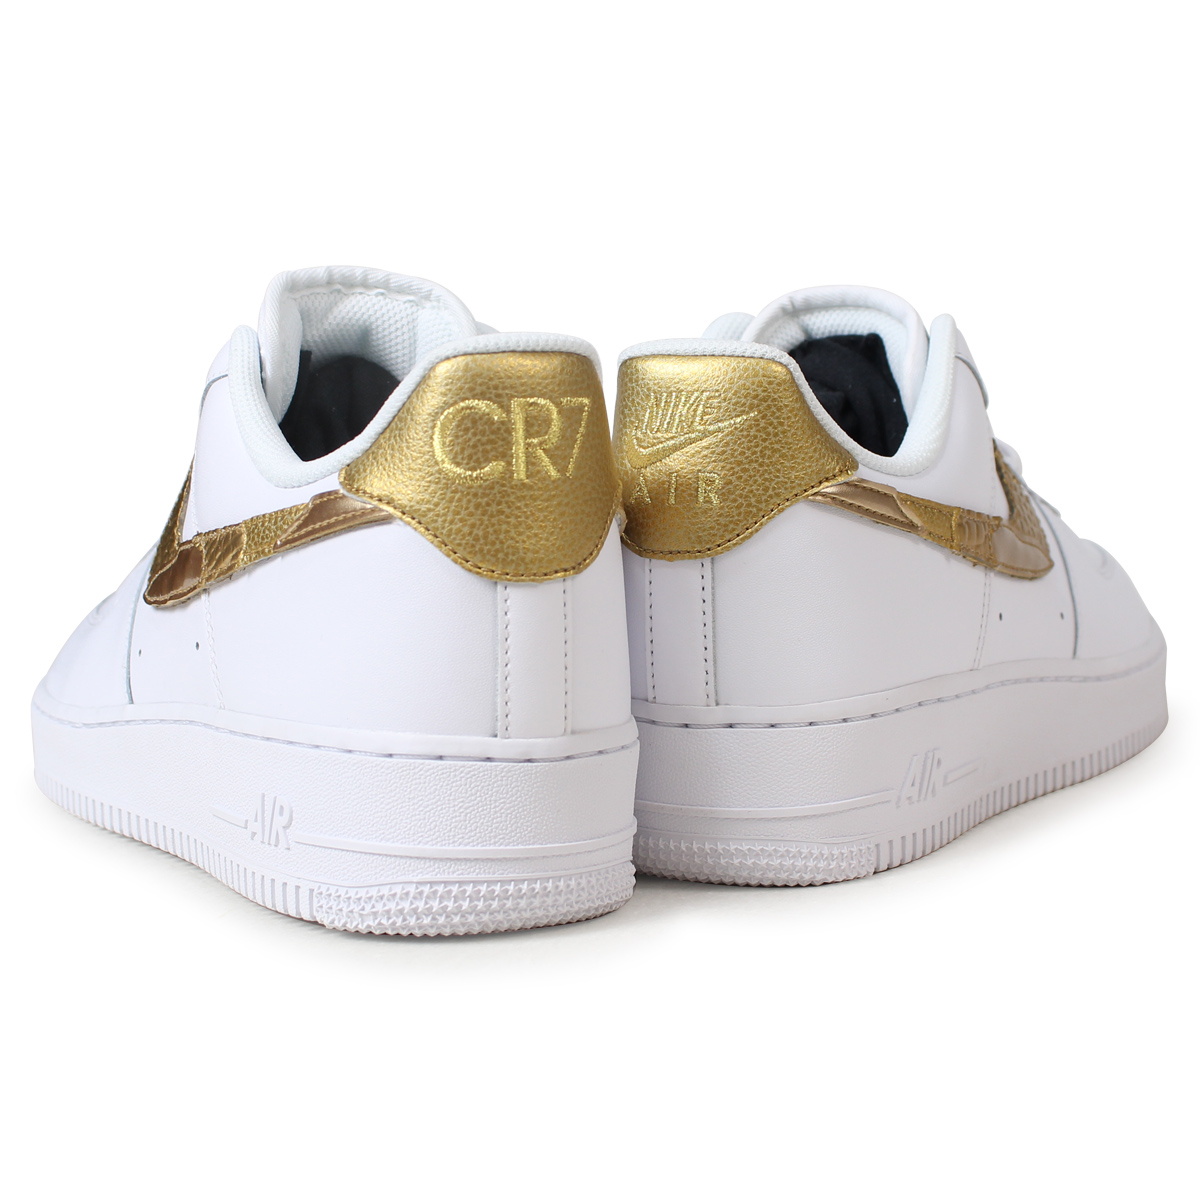 NIKE AIR FORCE 1 CR7 GOLDEN PATCHWORK Nike air force 1 07 sneakers men  AQ0666-100 white  185  aea3b2d61